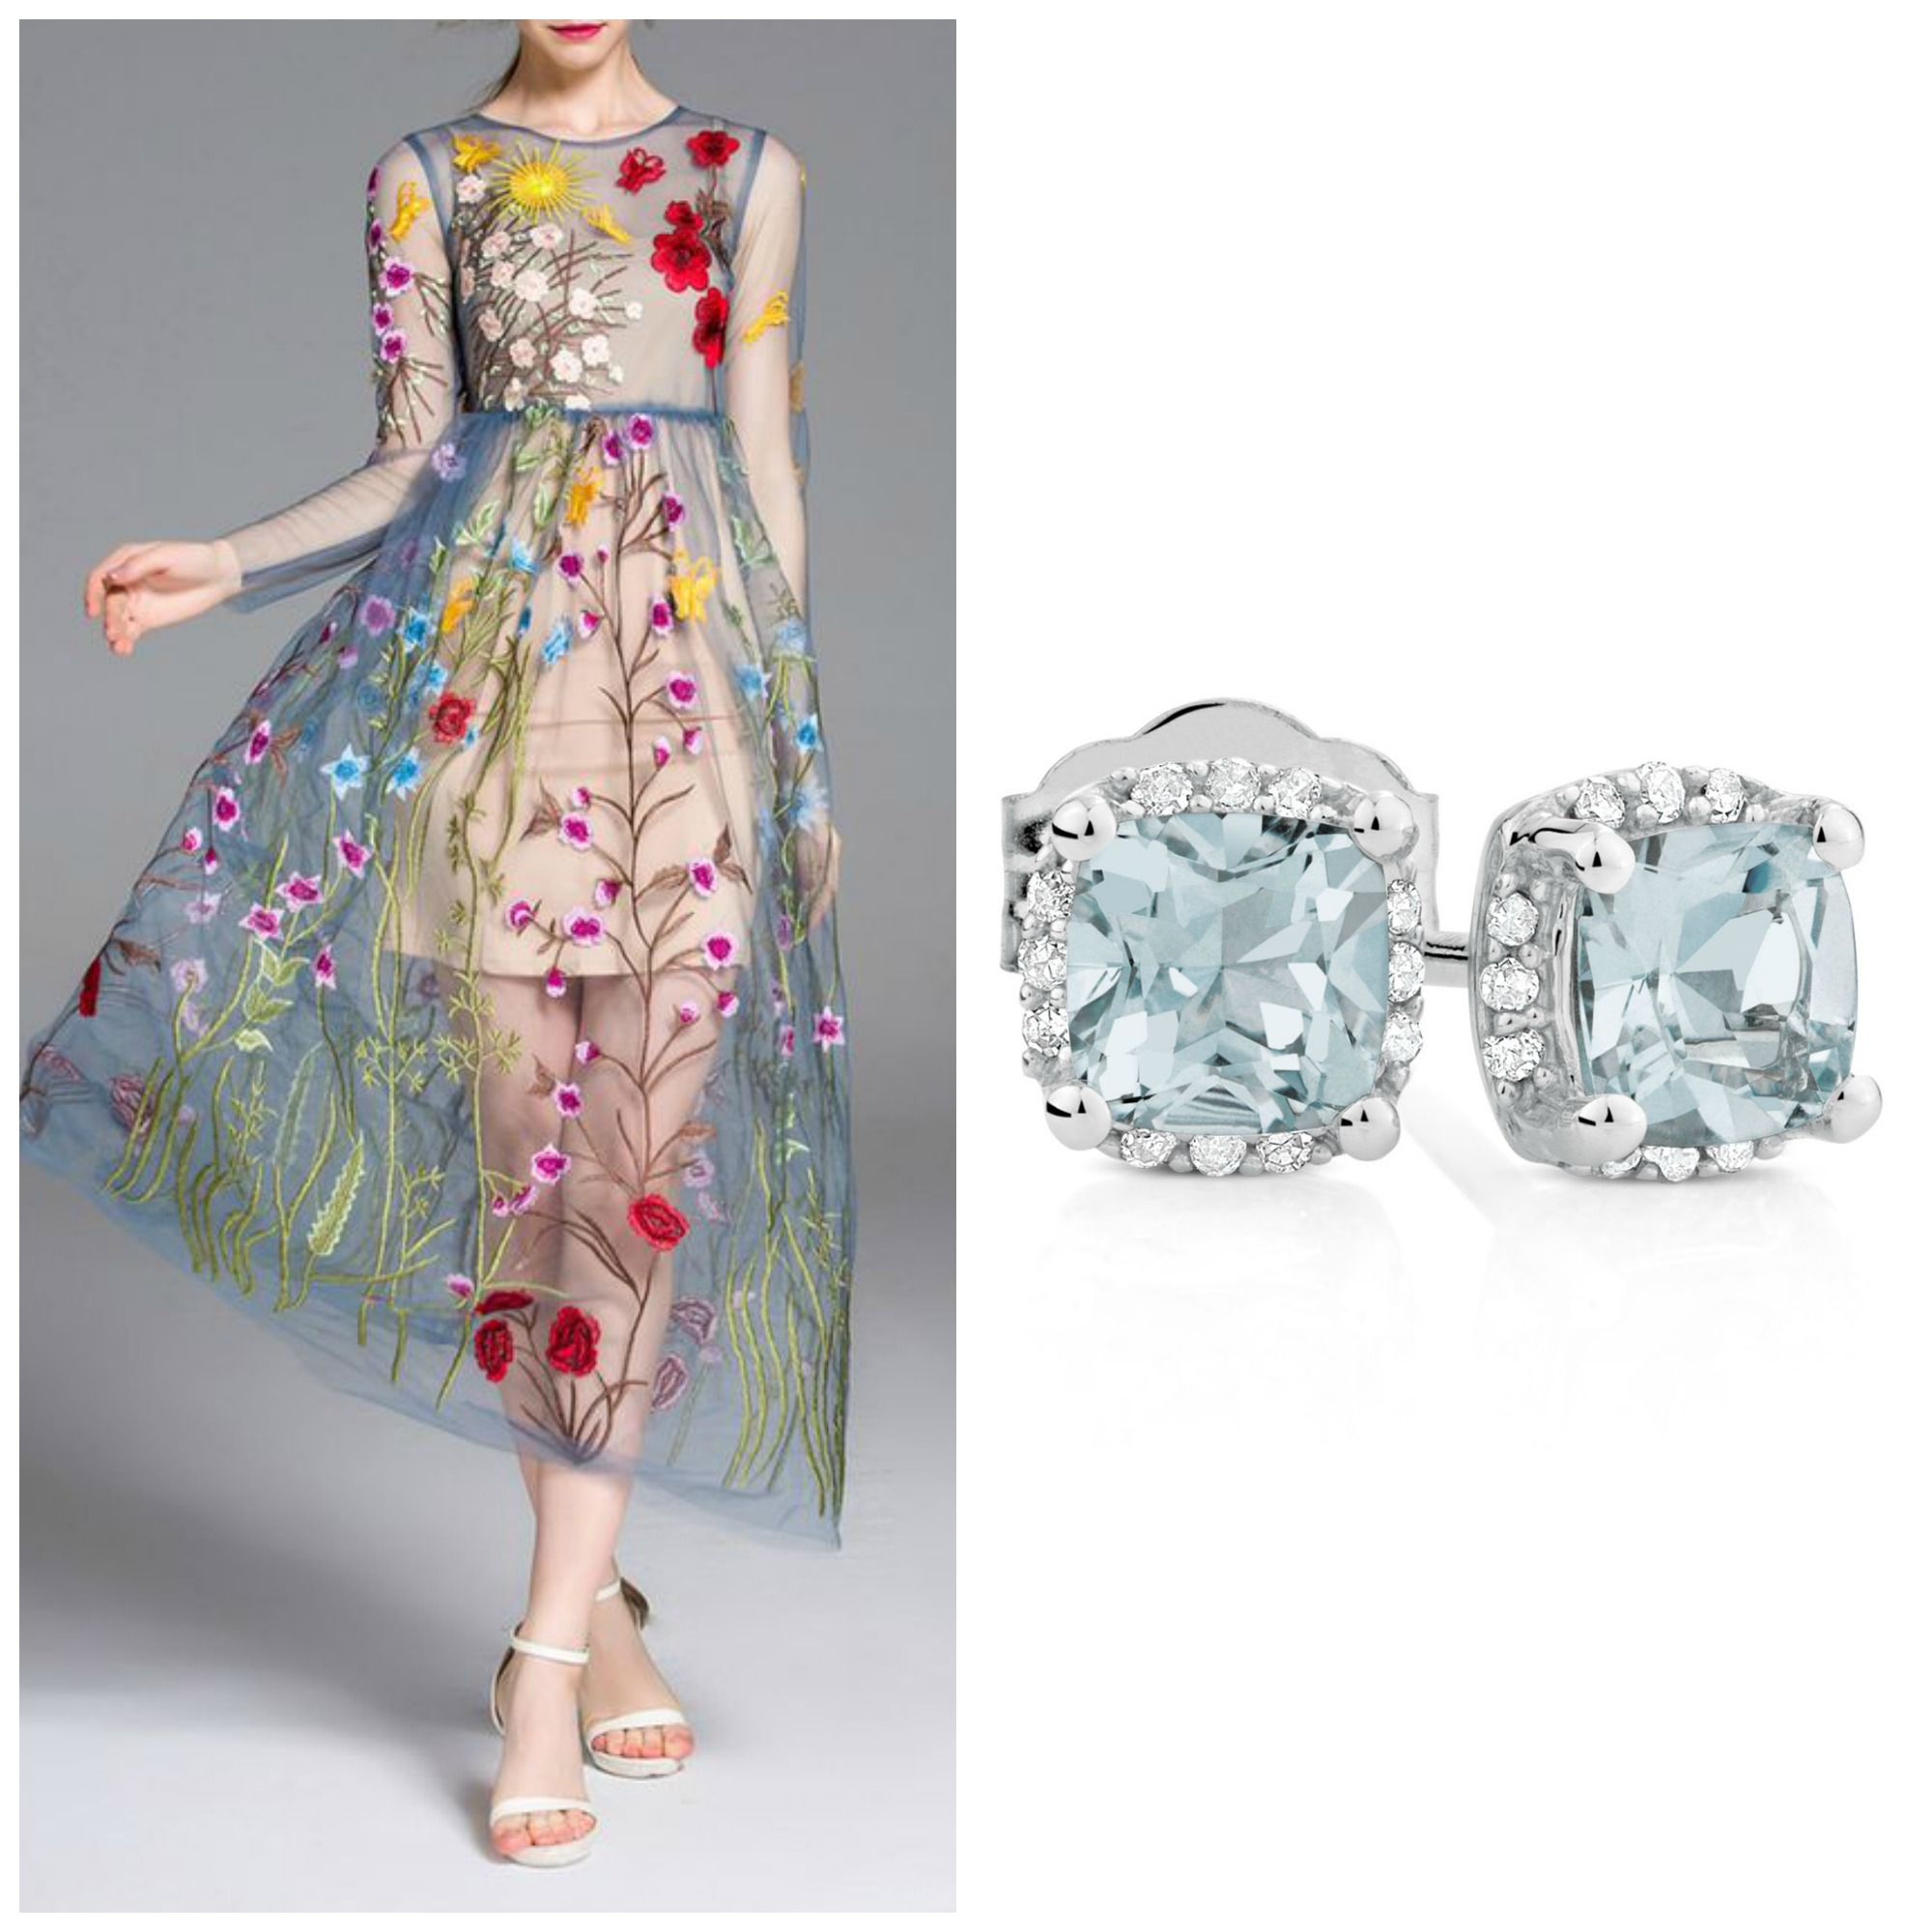 aquamarine earrings and dress